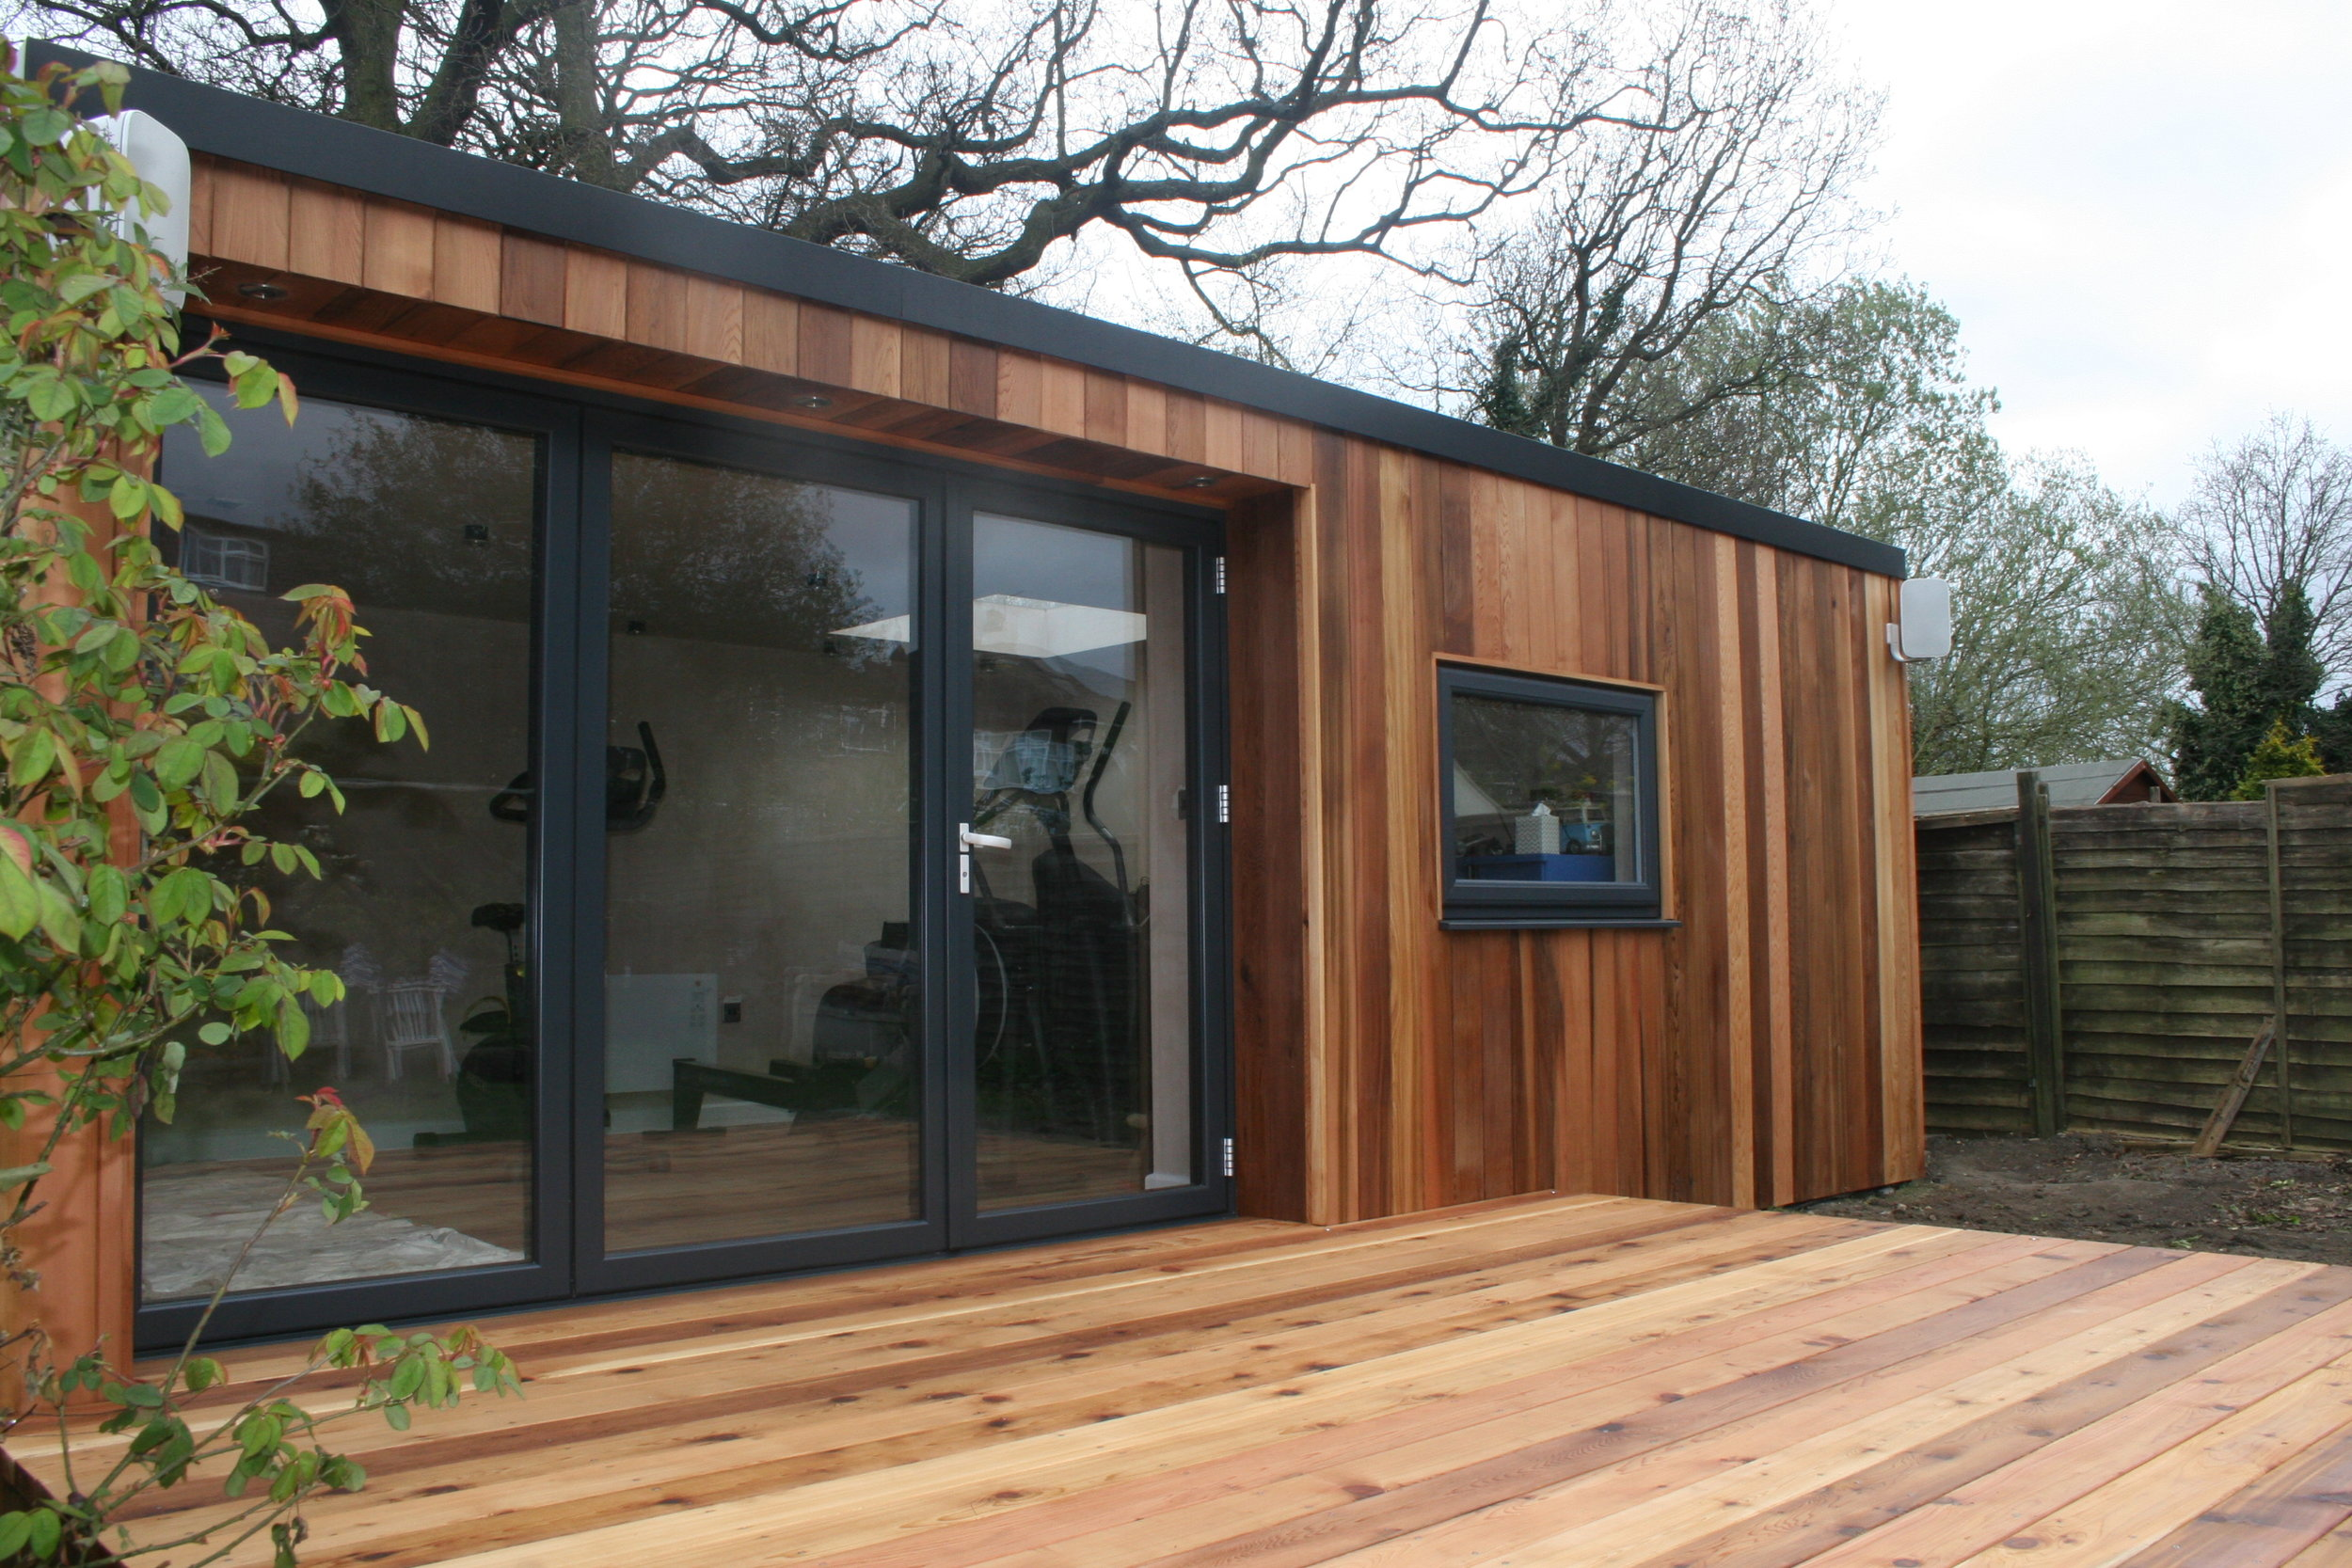 A Typical Build Diary - Build times vary typically between 7-12 working days, depending on the size and specification of the garden room.This build was completed within 12 working days.Features:6.6m x 3.9m Garden RoomConcrete Plinth & Steel Leg FoundationsVertical Cedar Cladding With UV Protector3m Aluminium Bi-folding Door1.2m x 1.2m Skylight3.9m x 3m Cedar Decking